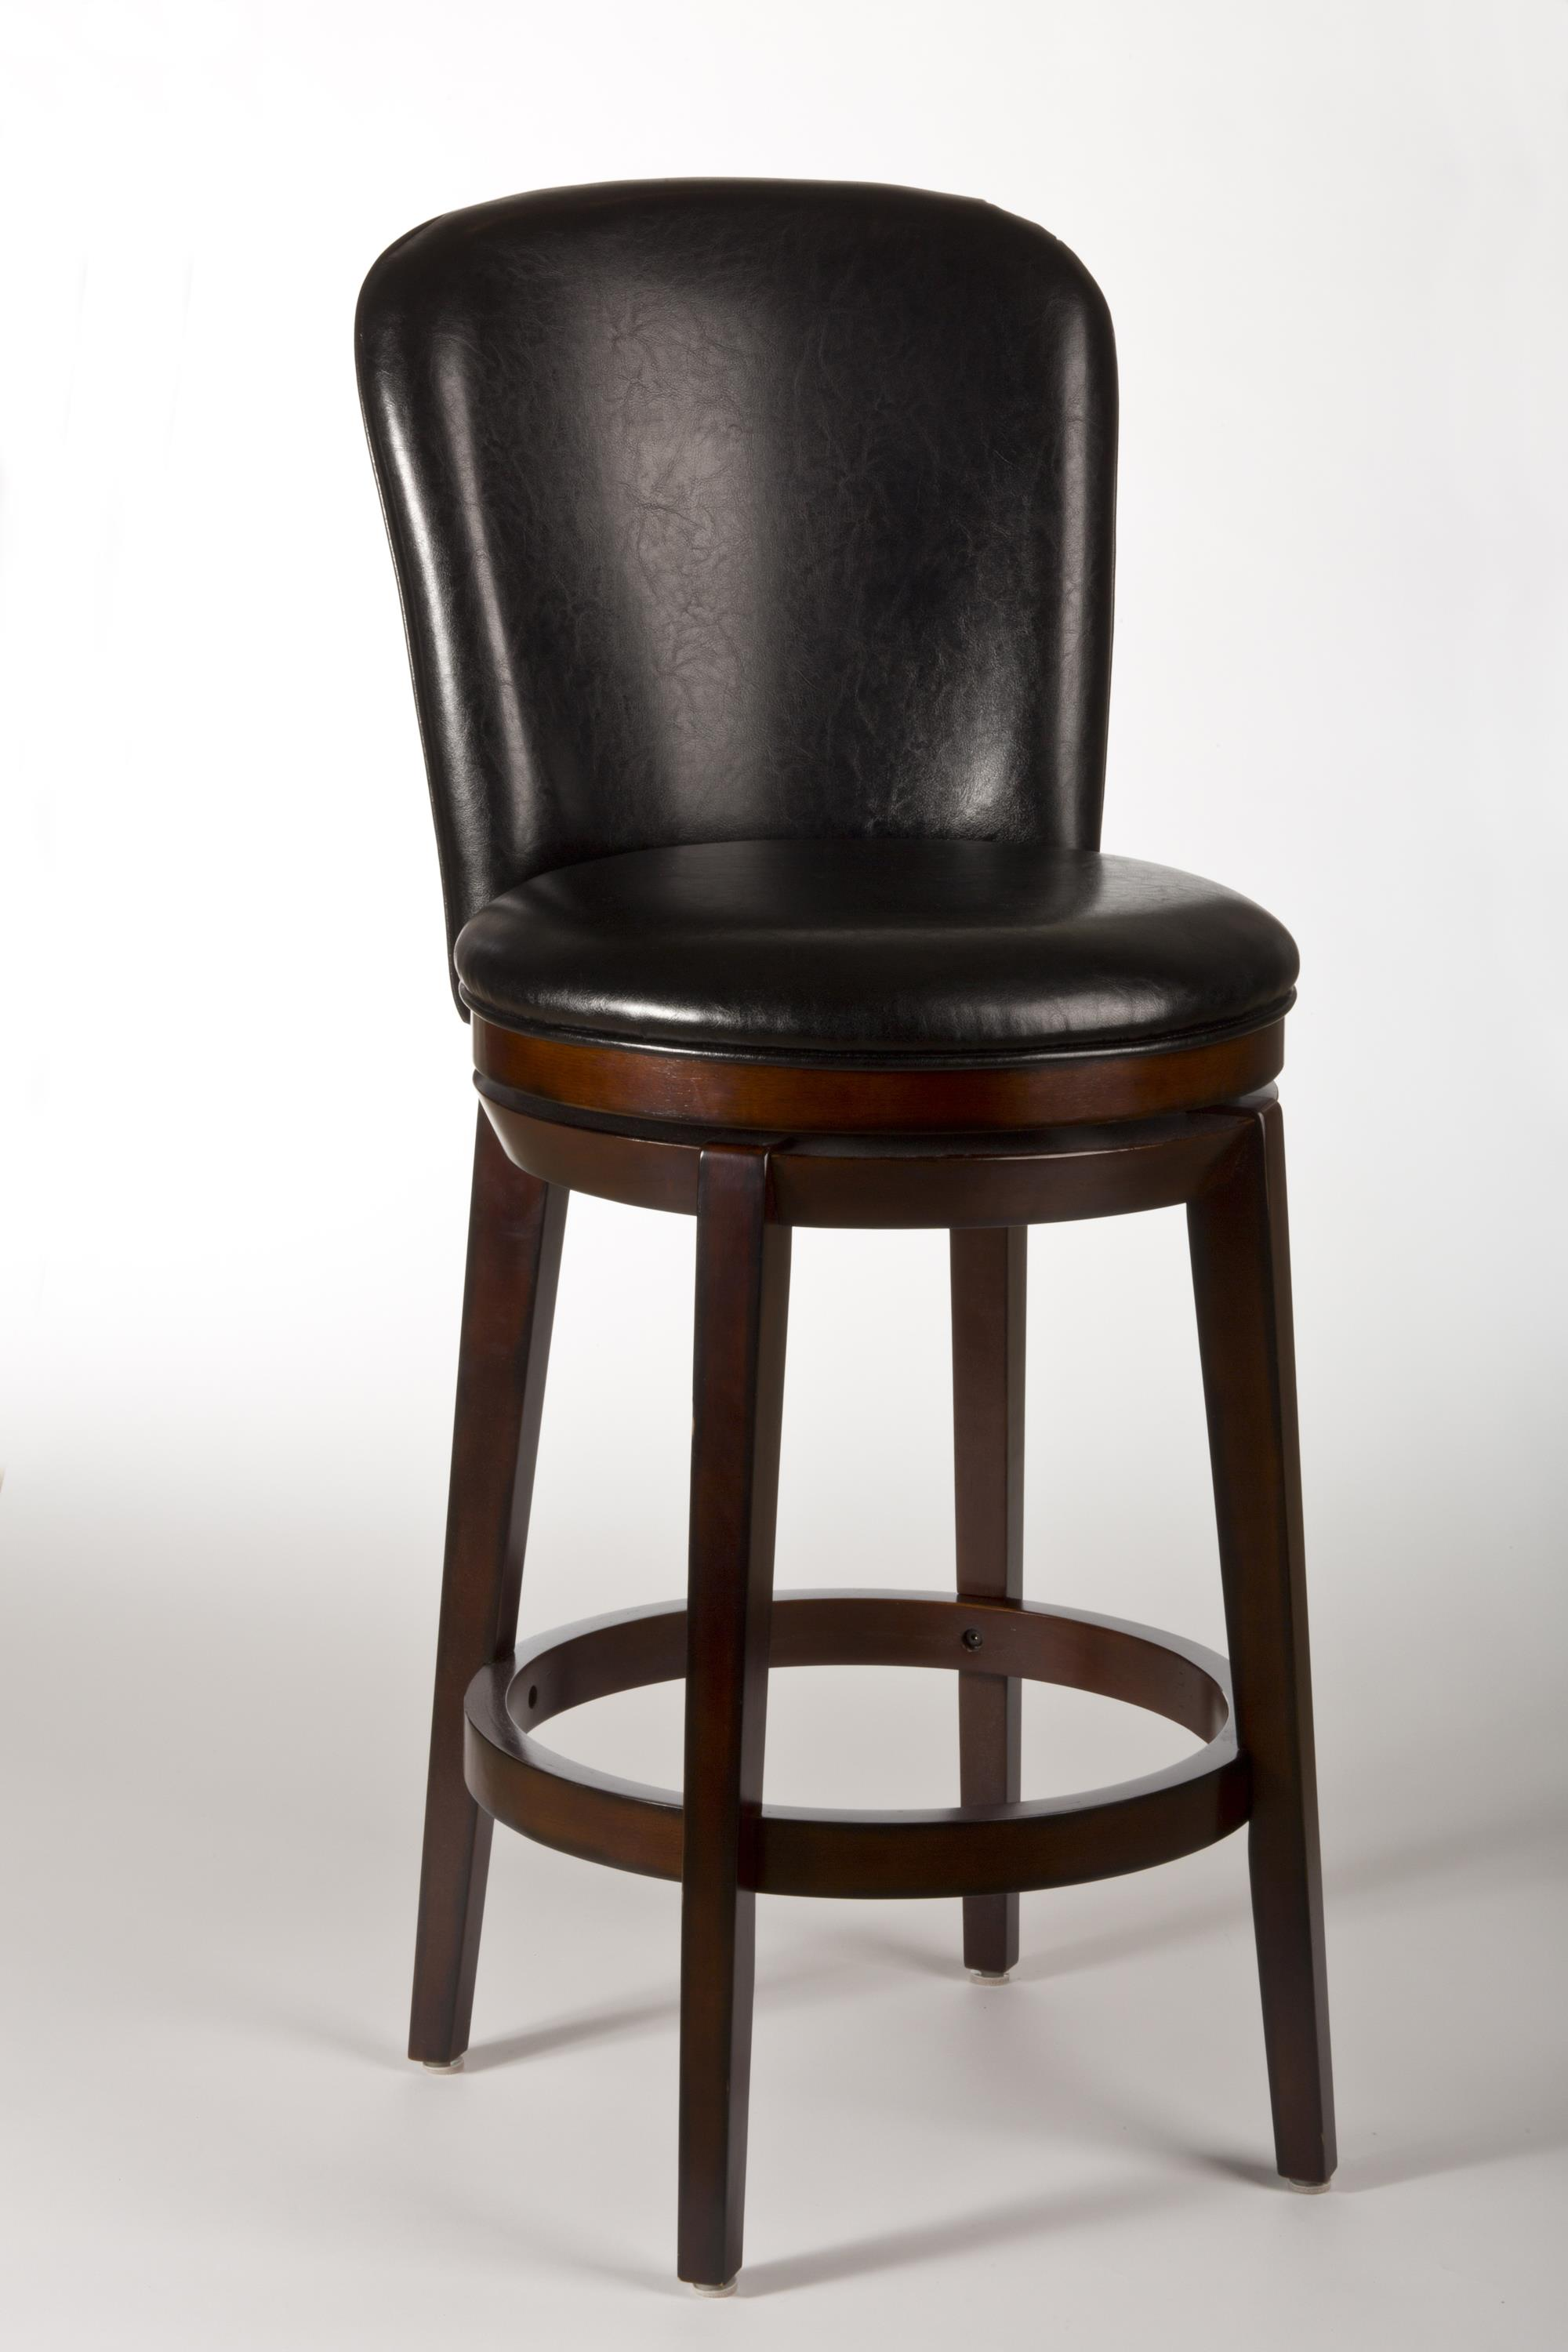 Hillsdale Metal Stools Victoria Swivel Counter Stool With